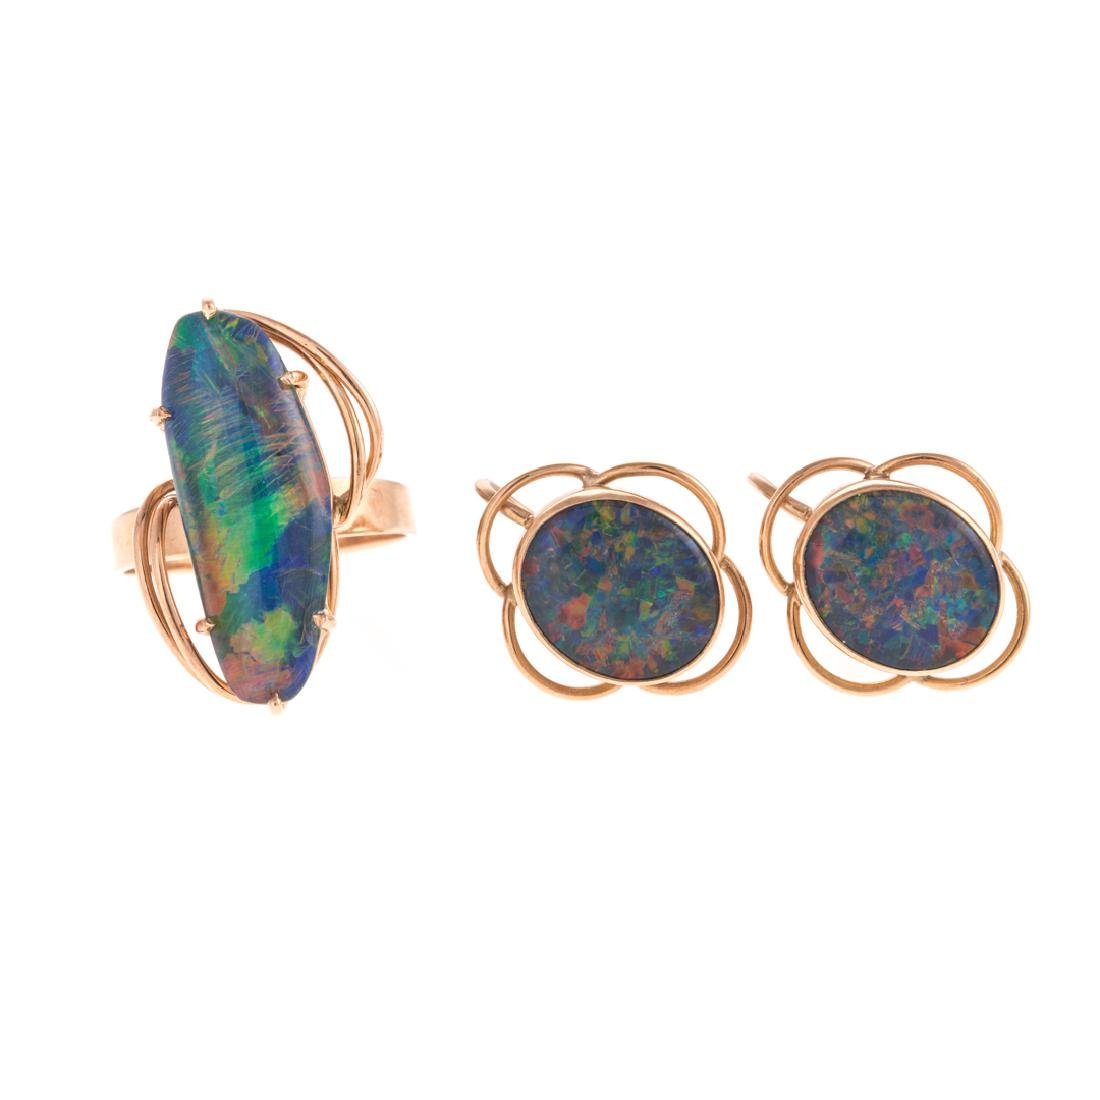 A Lady's Opal Ring & Matching Earrings in 9K